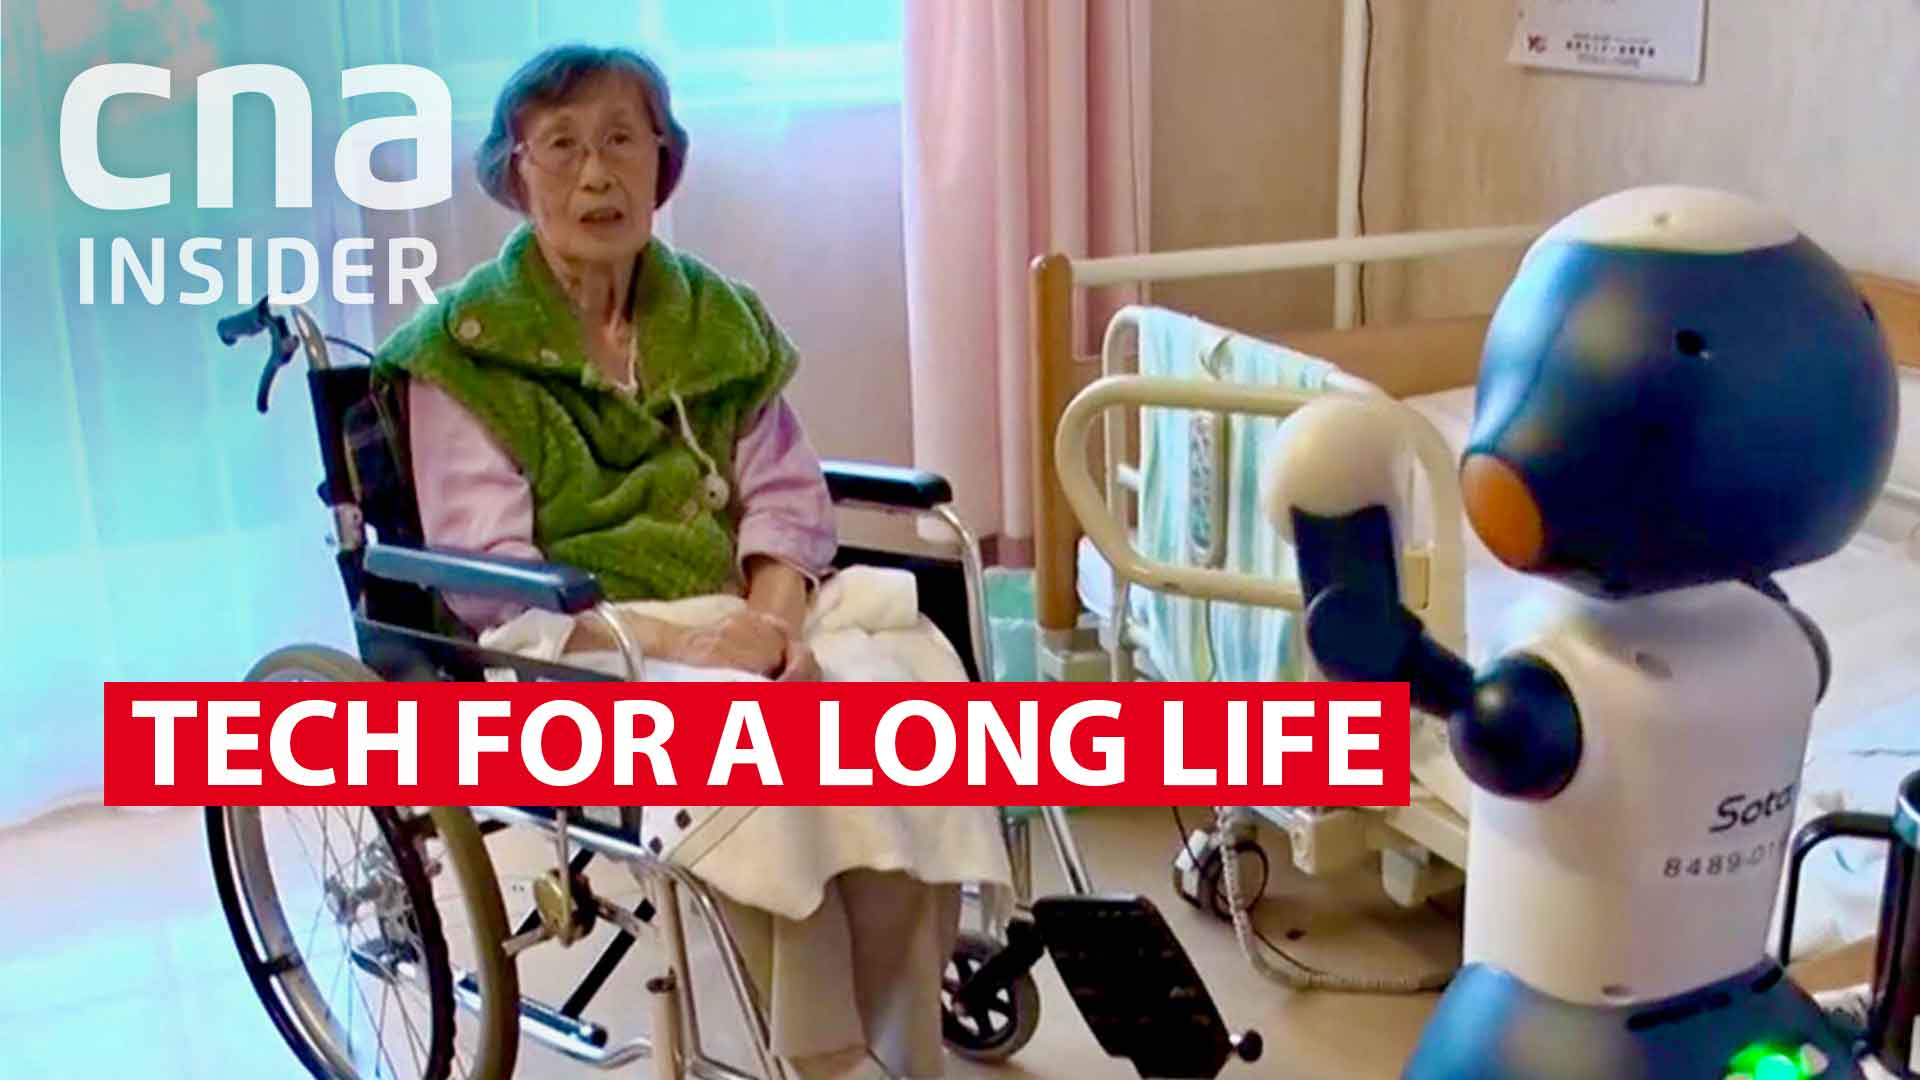 Technology that will help you live a long life